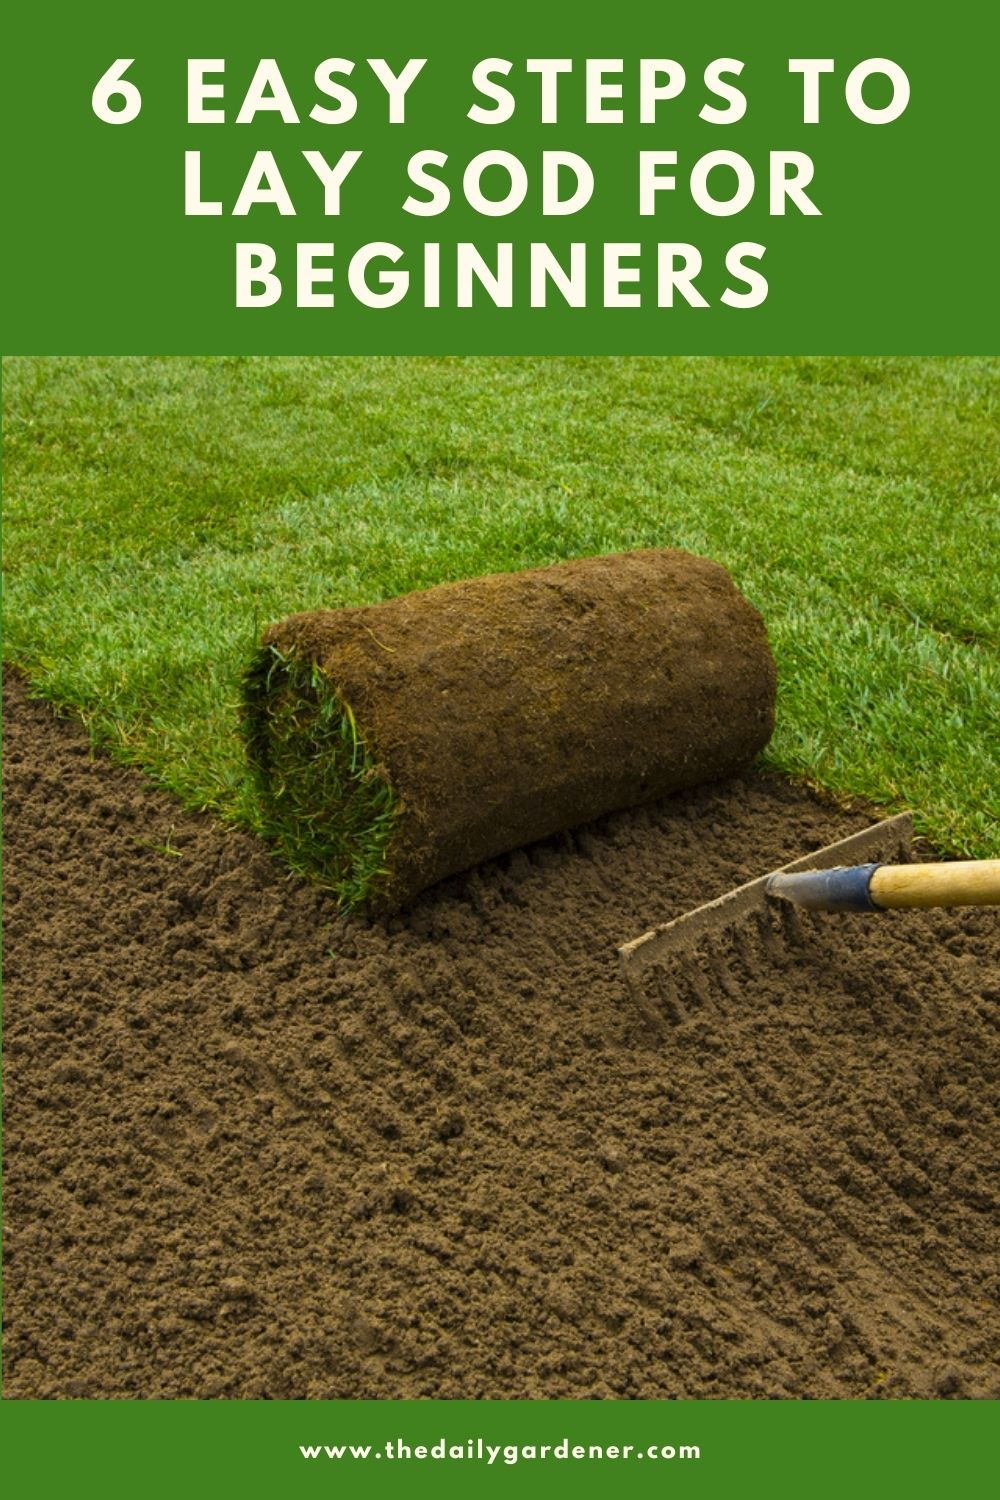 6 Easy Steps to Lay Sod for Beginners 2